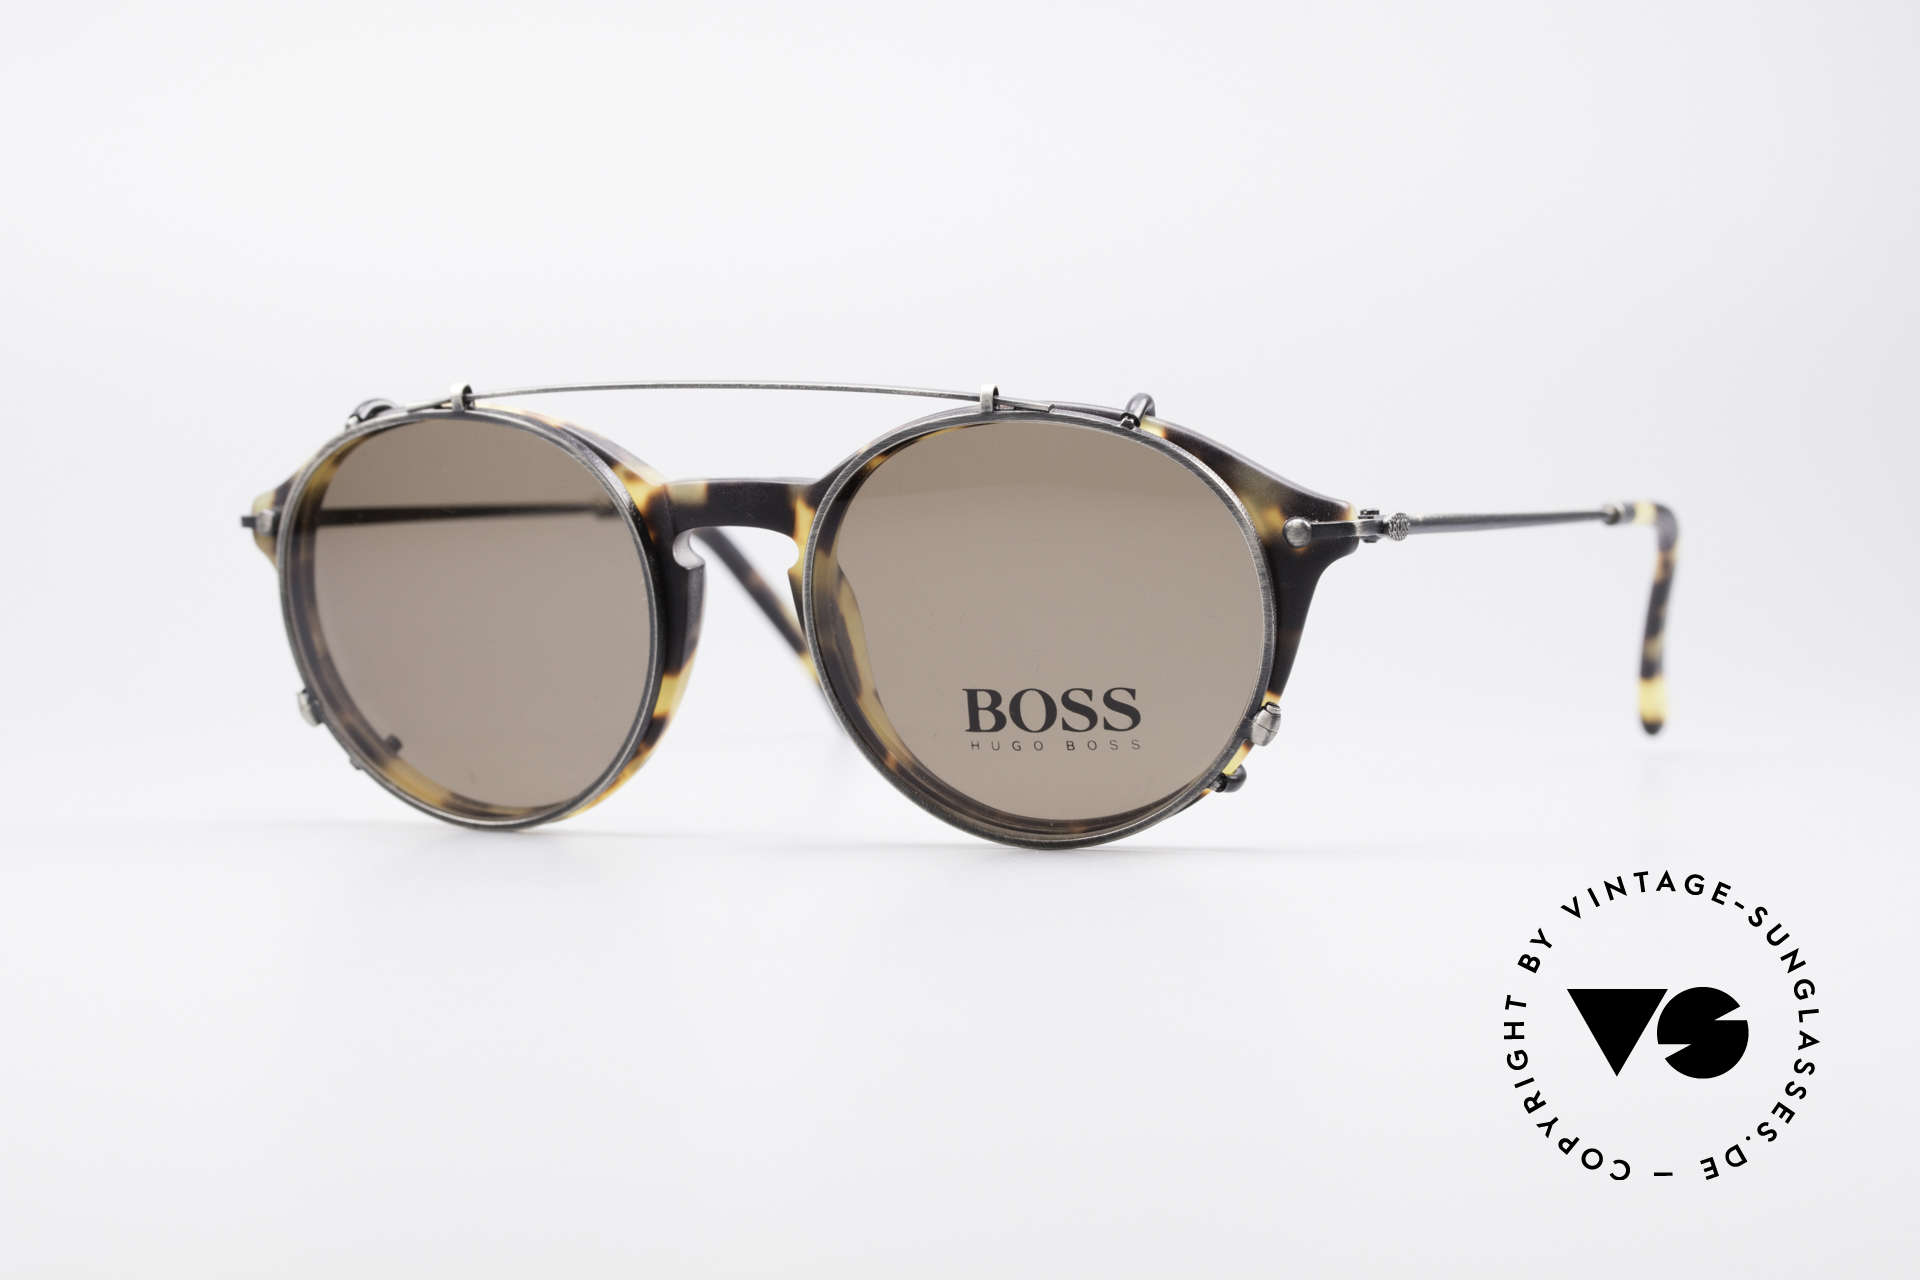 BOSS 5192 Sun Clip Panto Frame 1990's, classic vintage 'panto design' sunglasses by BOSS, Made for Men